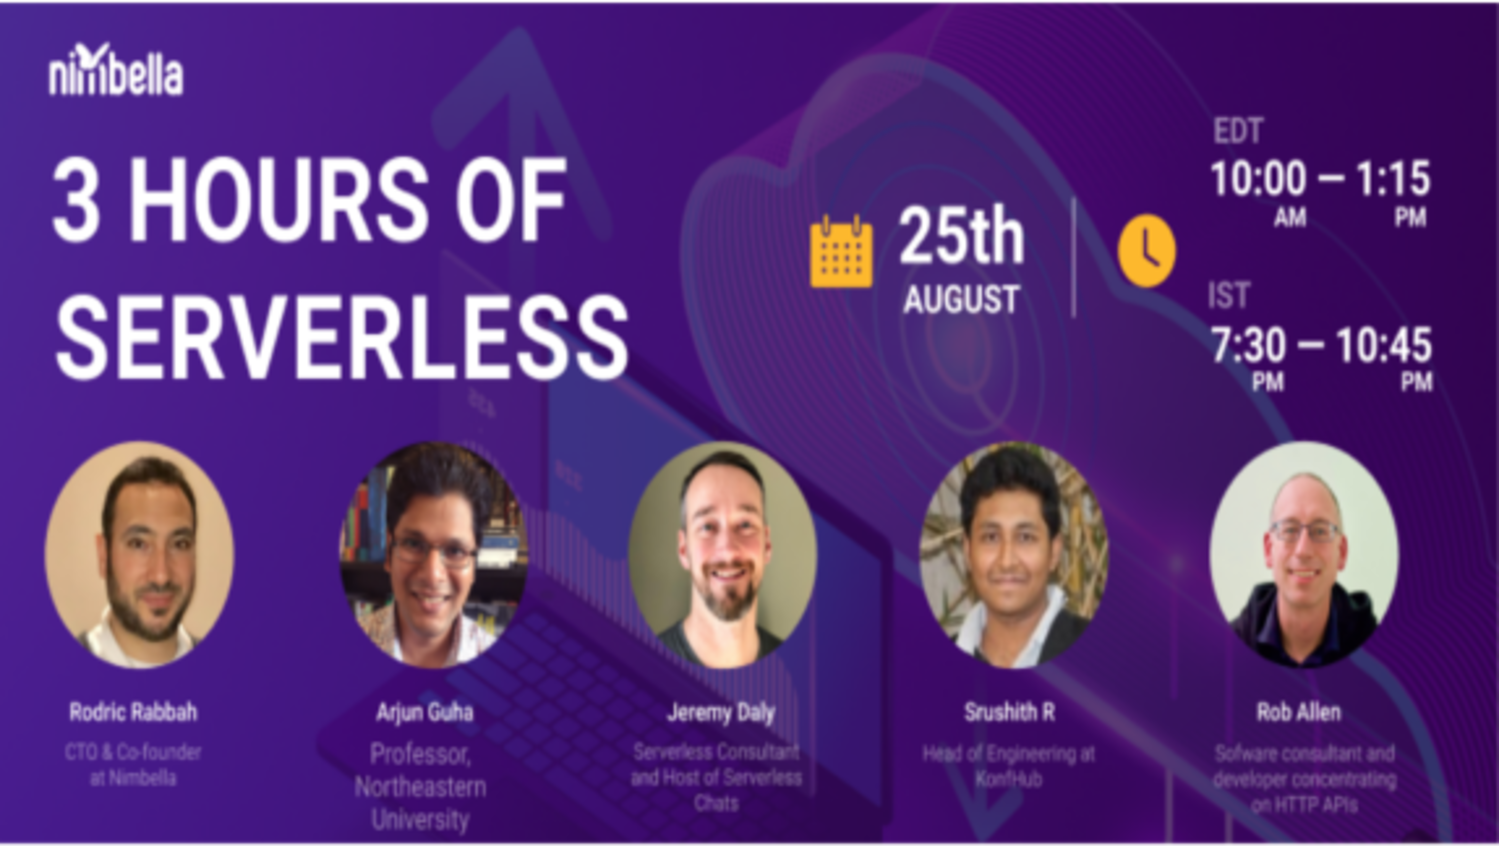 3 Hours of Serverless Conference